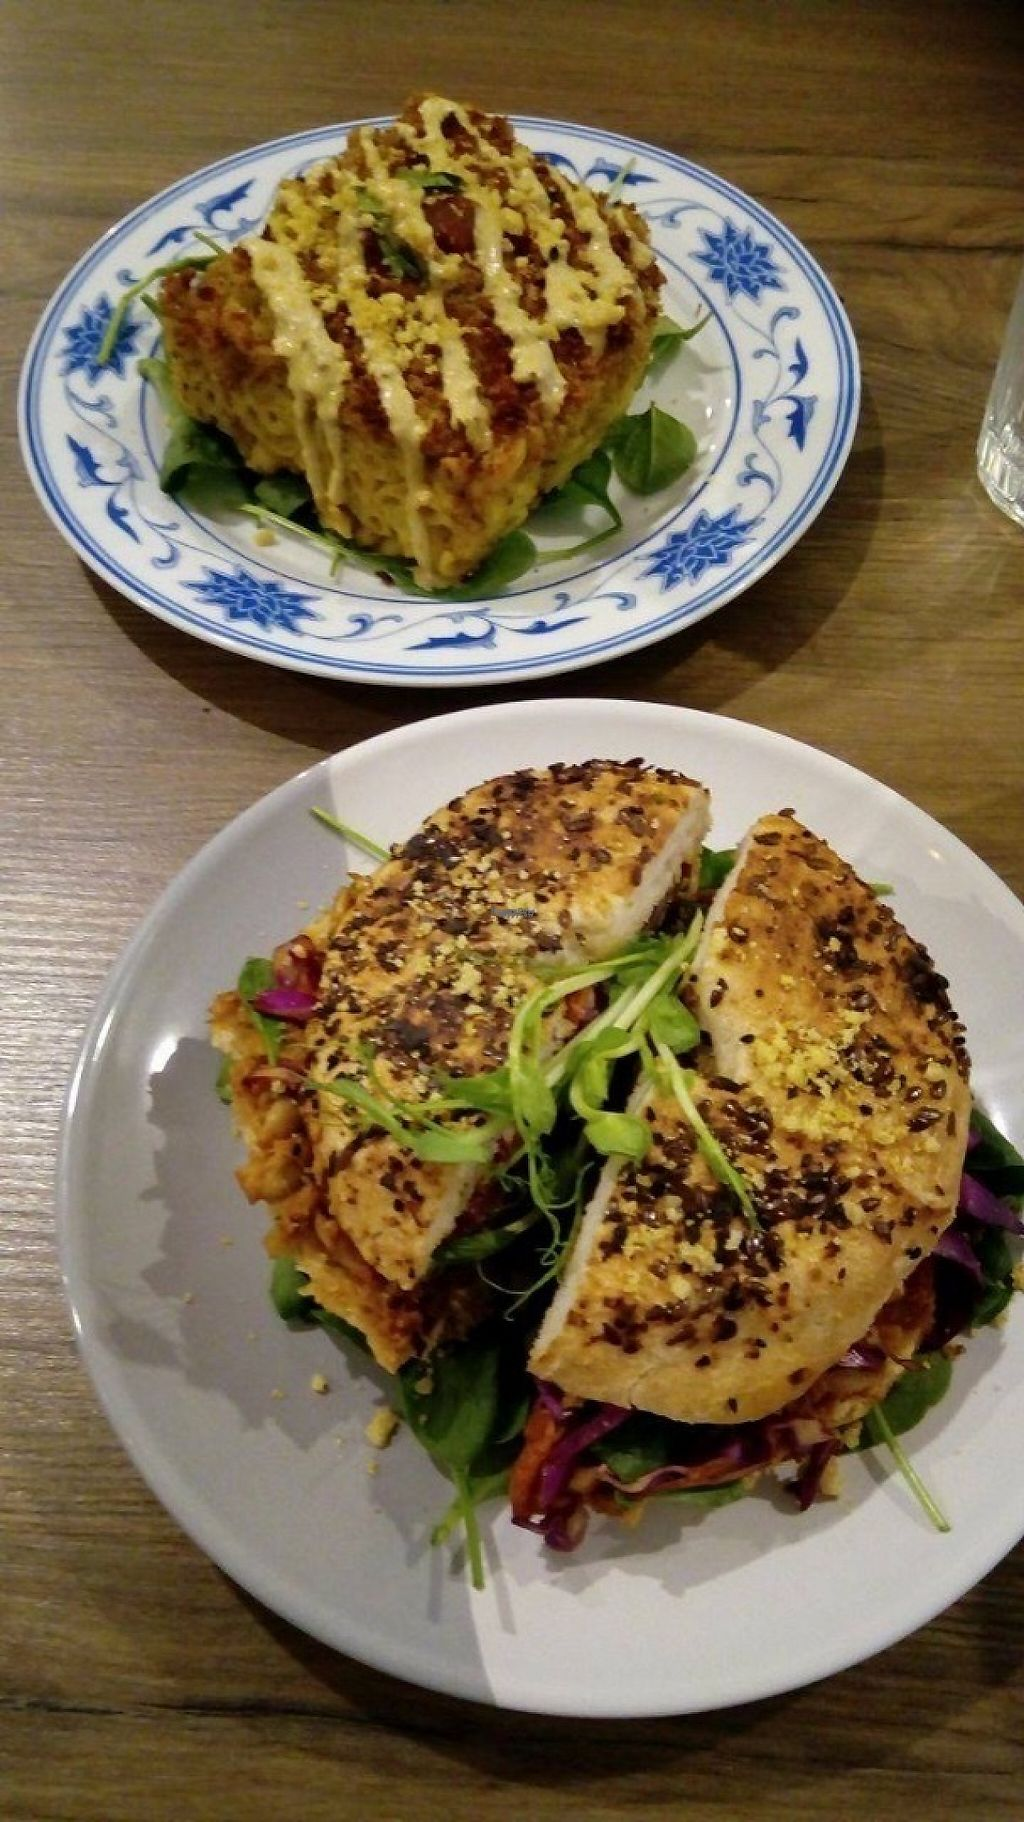 "Photo of CLOSED: Jujuberry+Co  by <a href=""/members/profile/Cynthia1998"">Cynthia1998</a> <br/>Smoky jackfruit ""pulled pork"" bagel and the vegan Mac and cheese <br/> April 6, 2017  - <a href='/contact/abuse/image/76563/245133'>Report</a>"